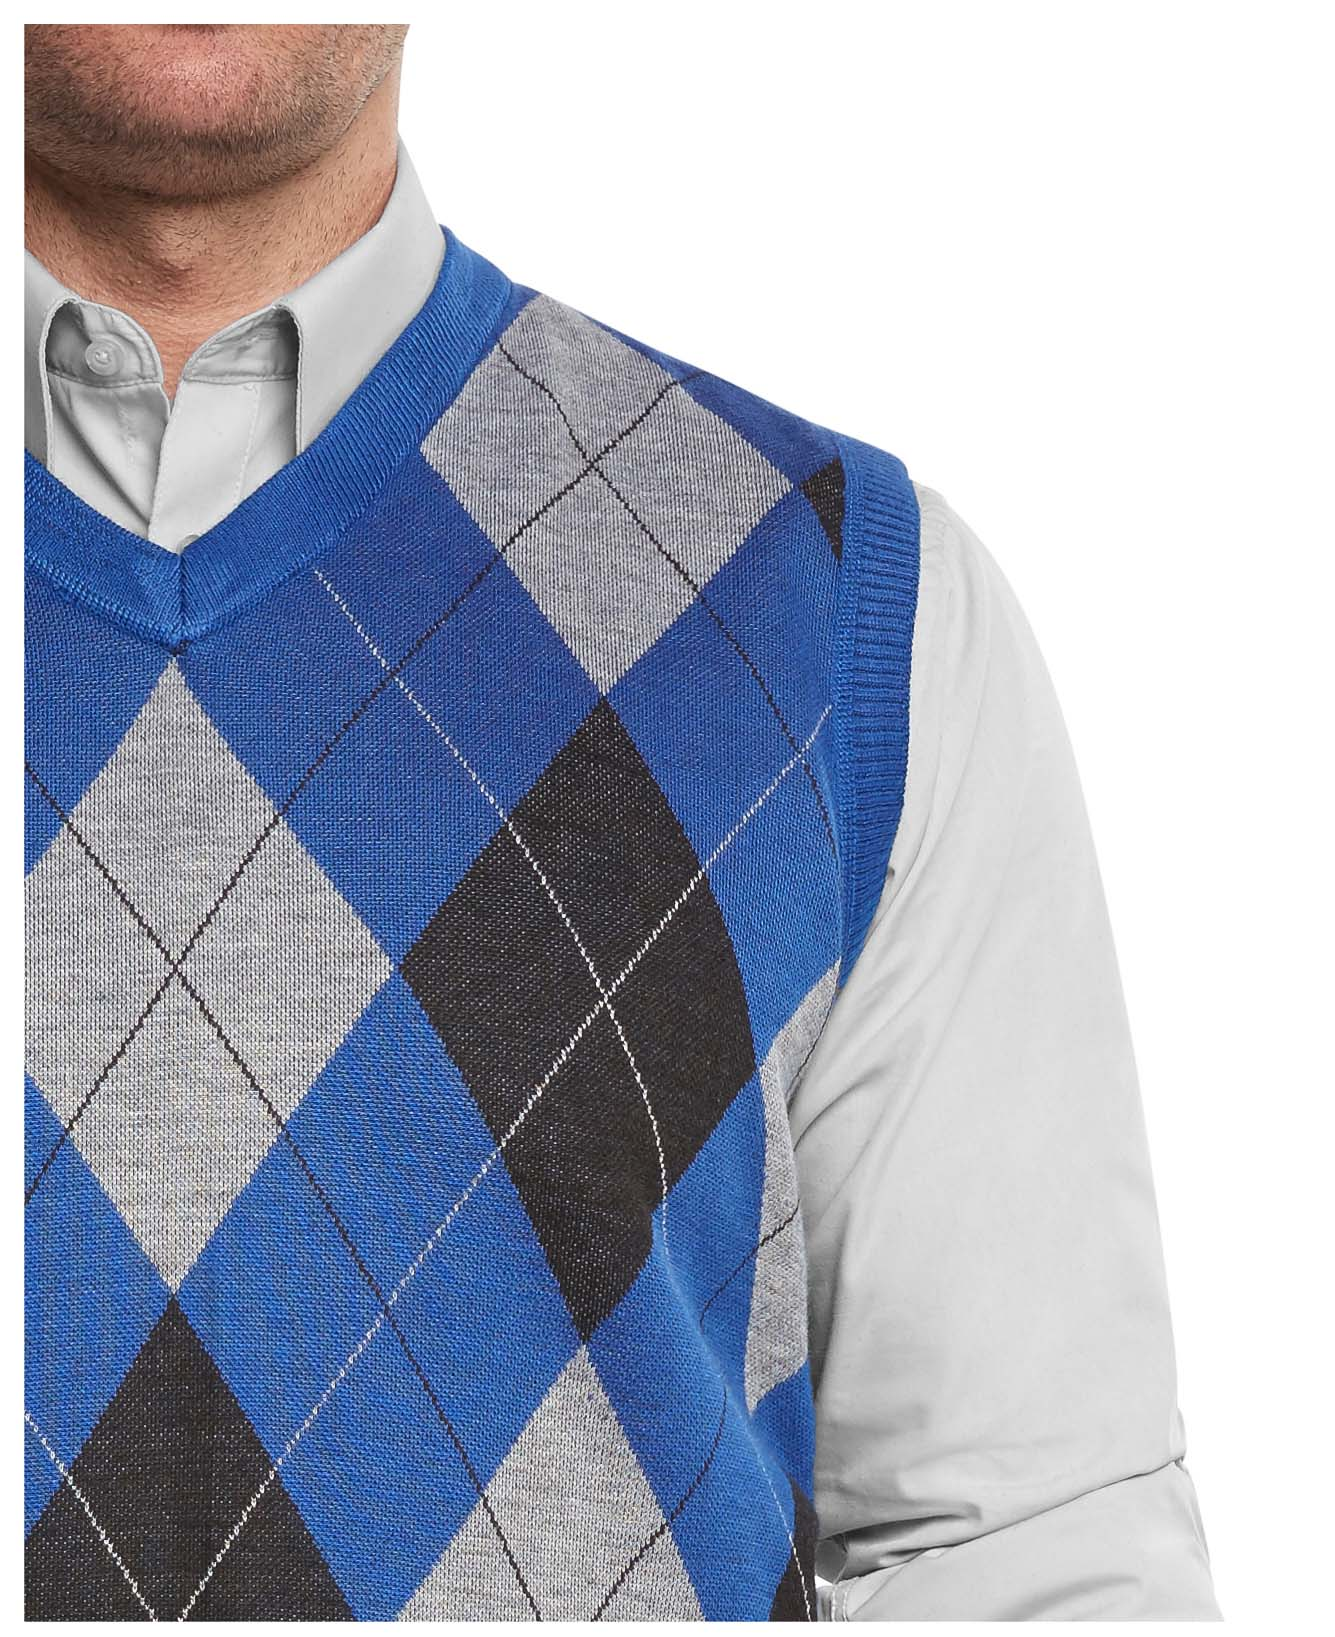 True Rock Men's Argyle V-neck Sweater Vest 2xl Royal/blk/gray | eBay